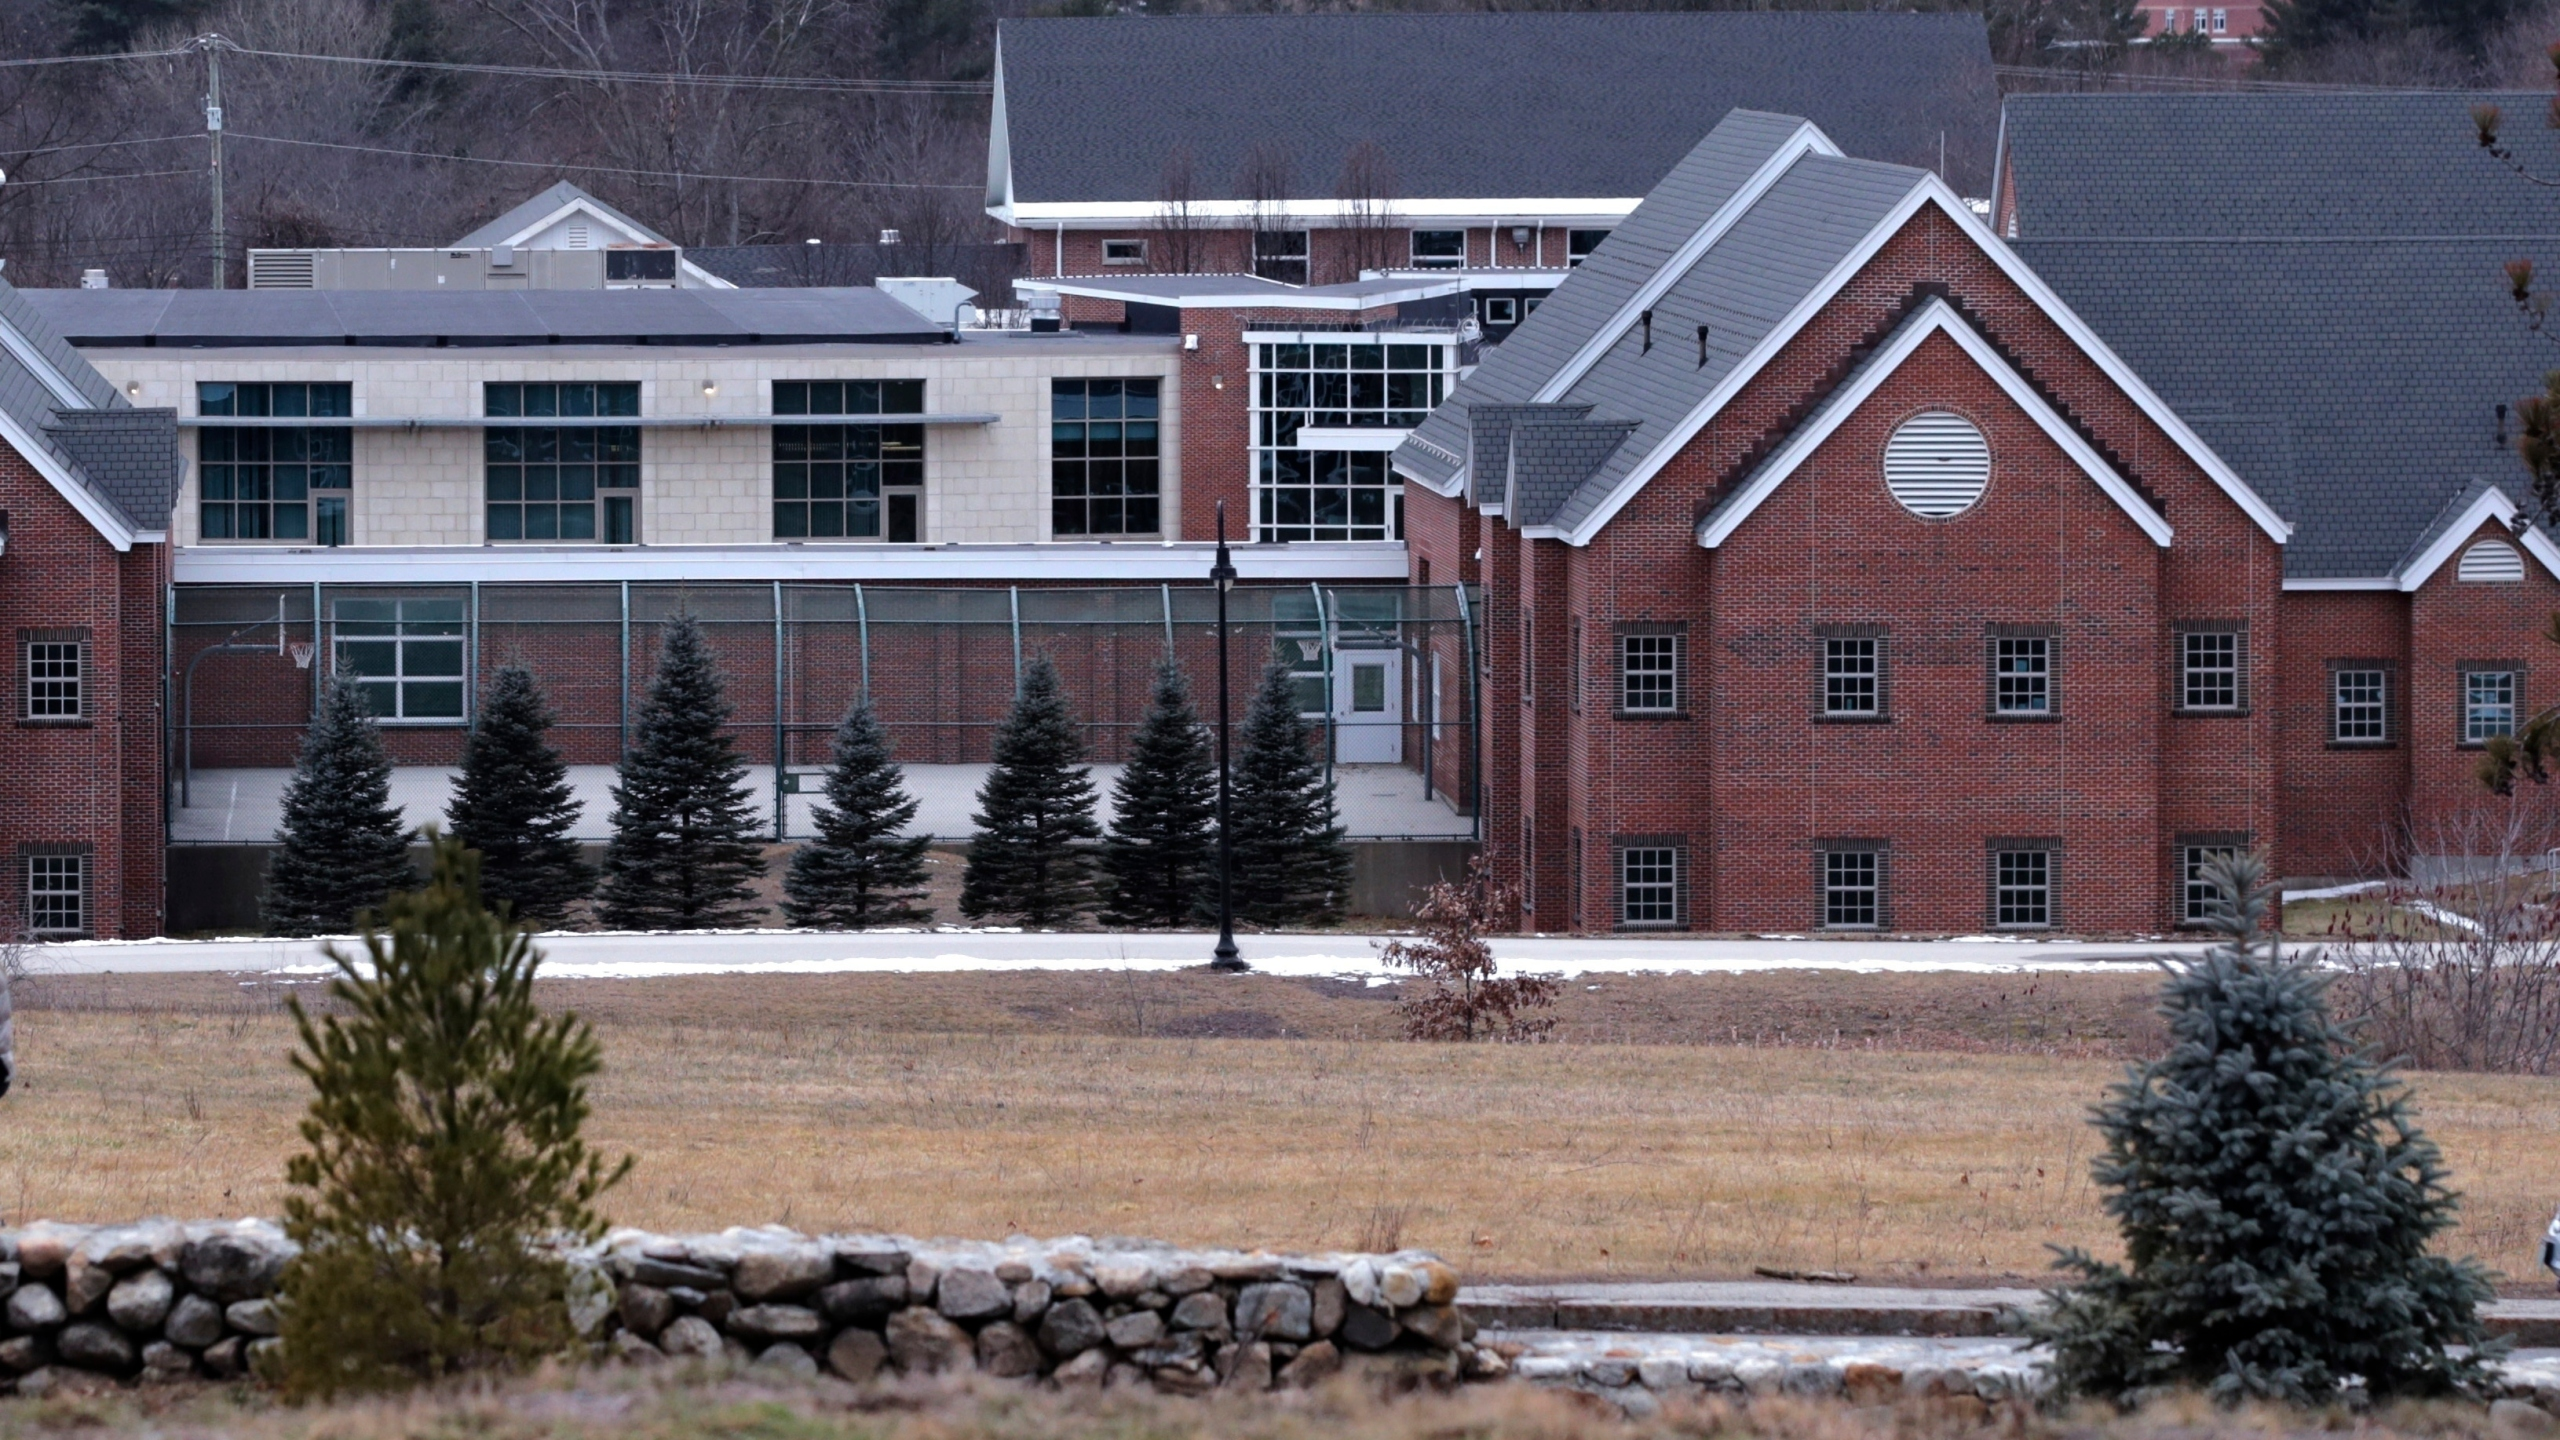 In this Jan. 28, 2020, file photo is the Sununu Youth Services Center in Manchester, N.H. As states from California to Maine consider drastic changes to youth detention centers, New Hampshire is grappling with its own facility that has been rocked by abuse allegations from years past. The state's Legislature will vote Thursday on a proposed state budget that would close the sprawling facility — housing fewer than 20 children on a campus built for 144 — by March 2023 and replace it with a new 18-bed center. (AP Photo/Charles Krupa, File)